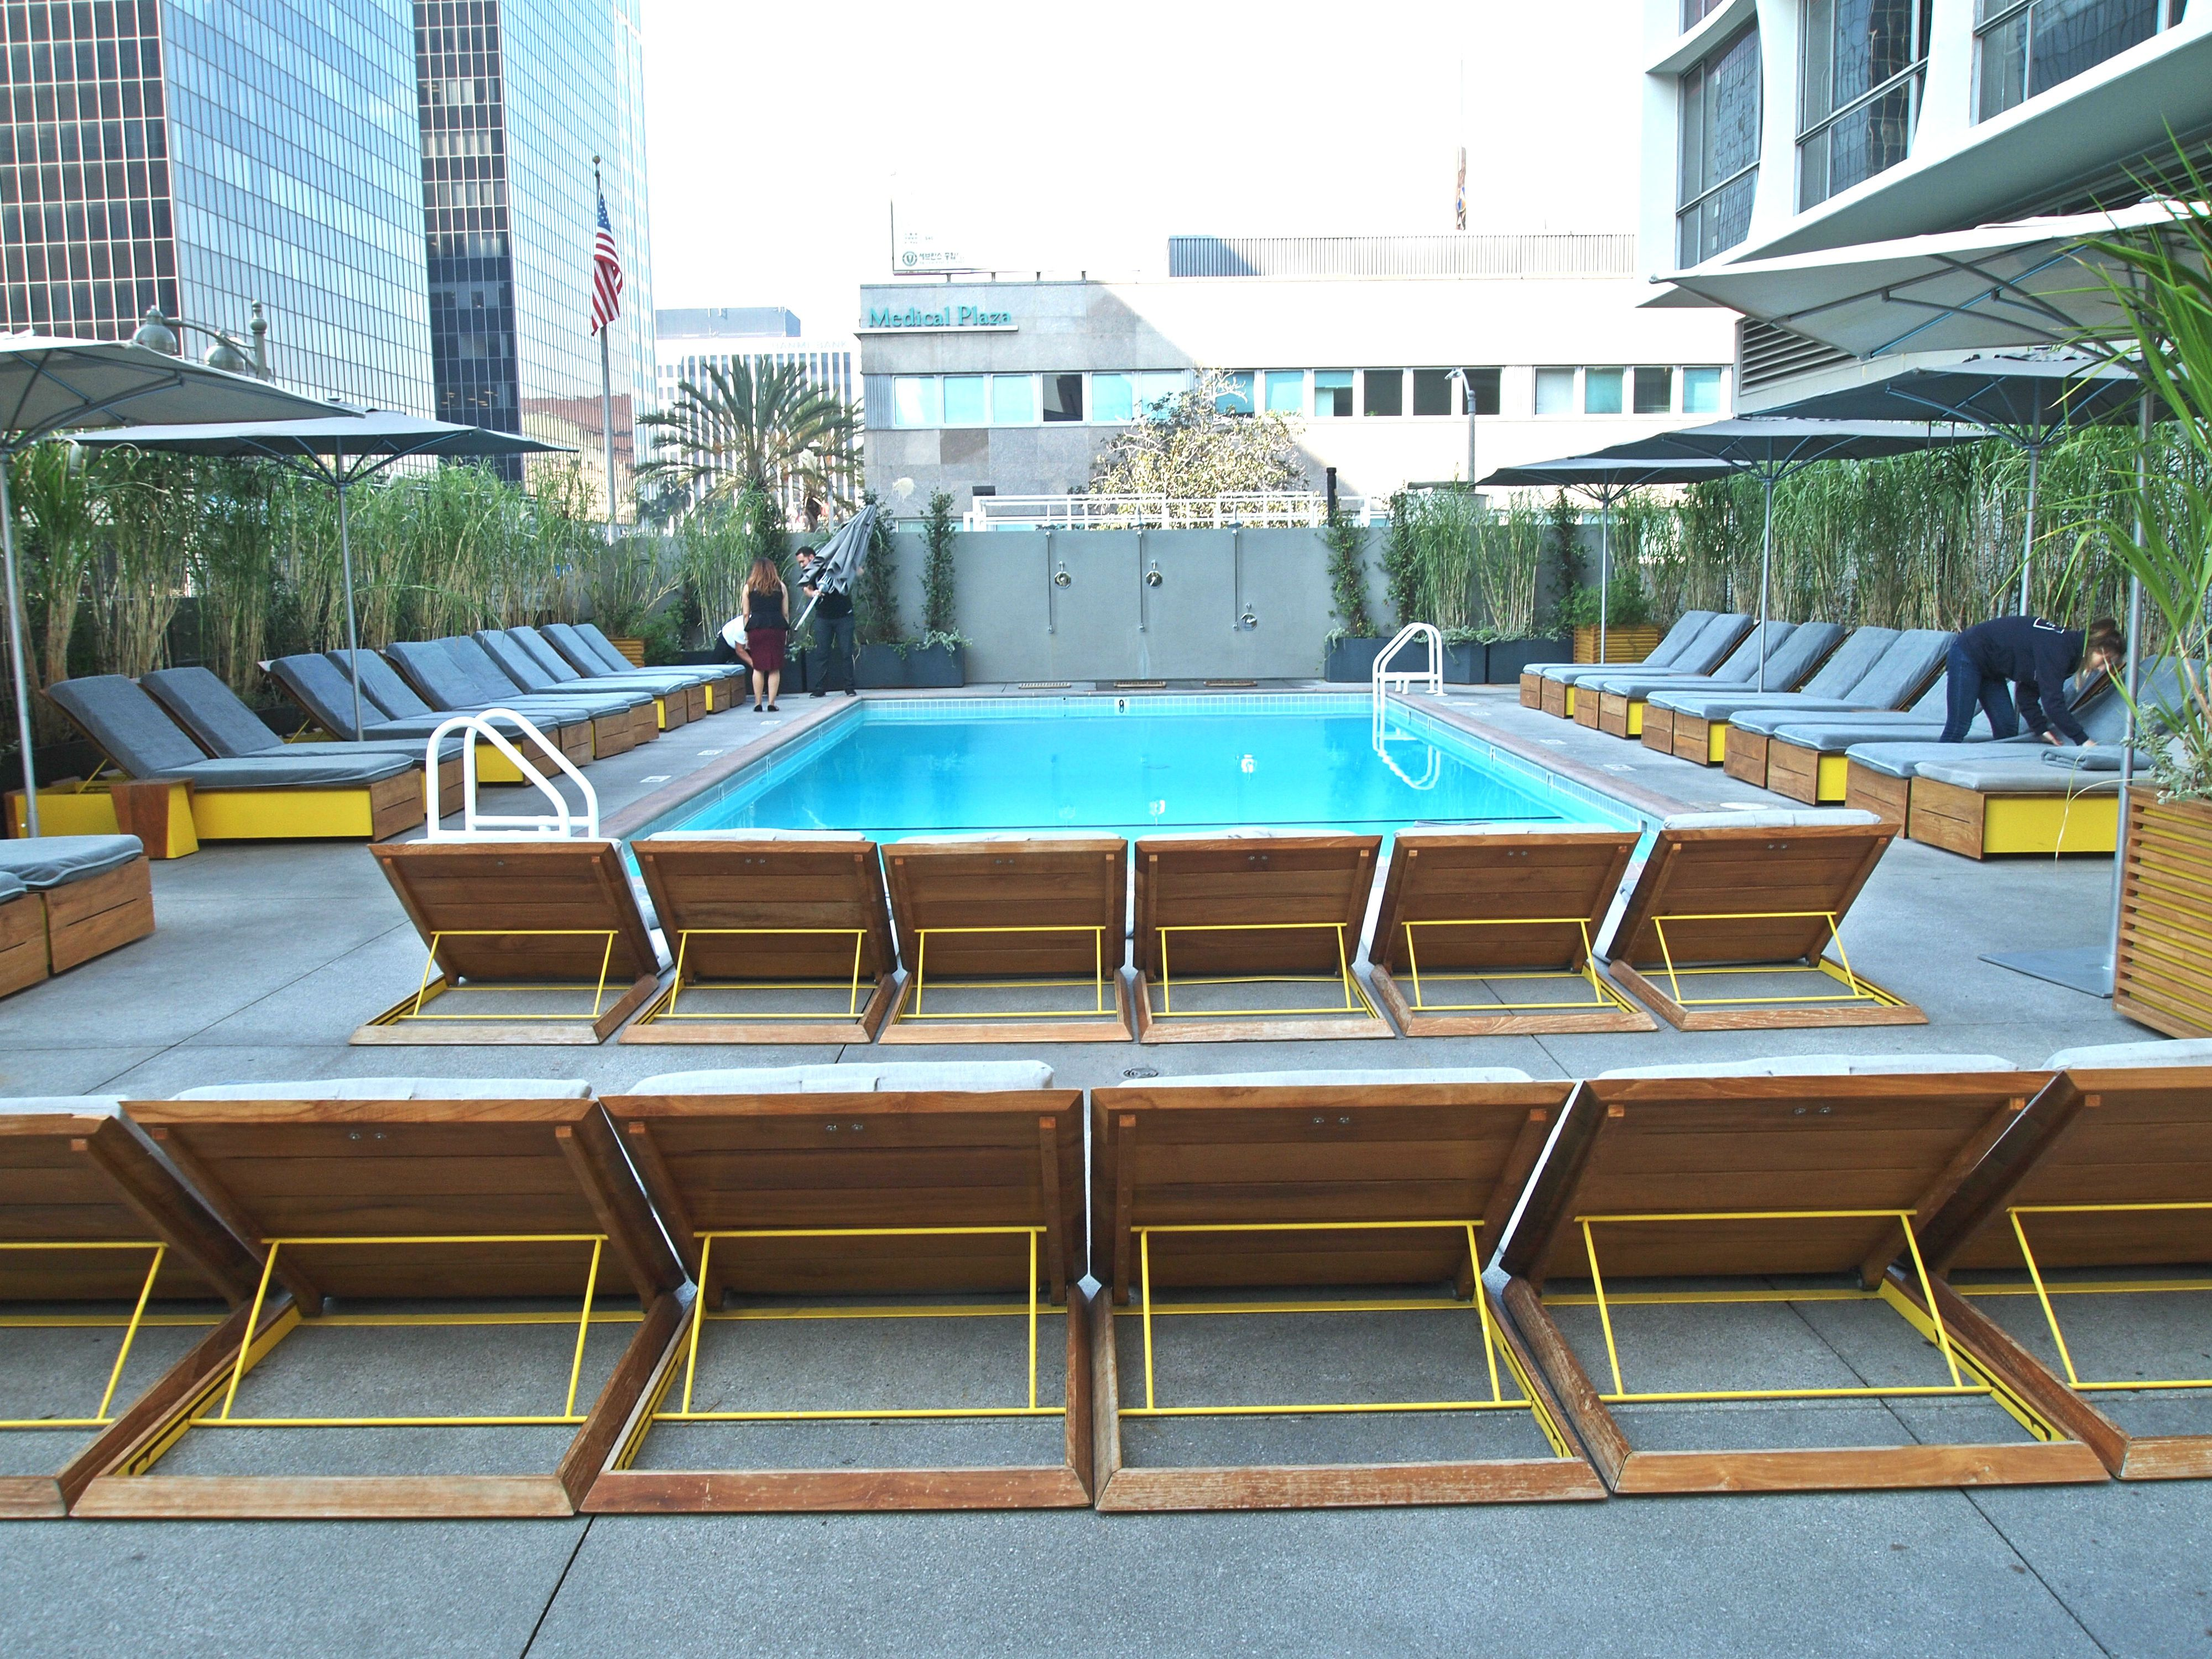 Pool at the Line Hotel / Commissary Koreatown Downtown Los Angeles  California